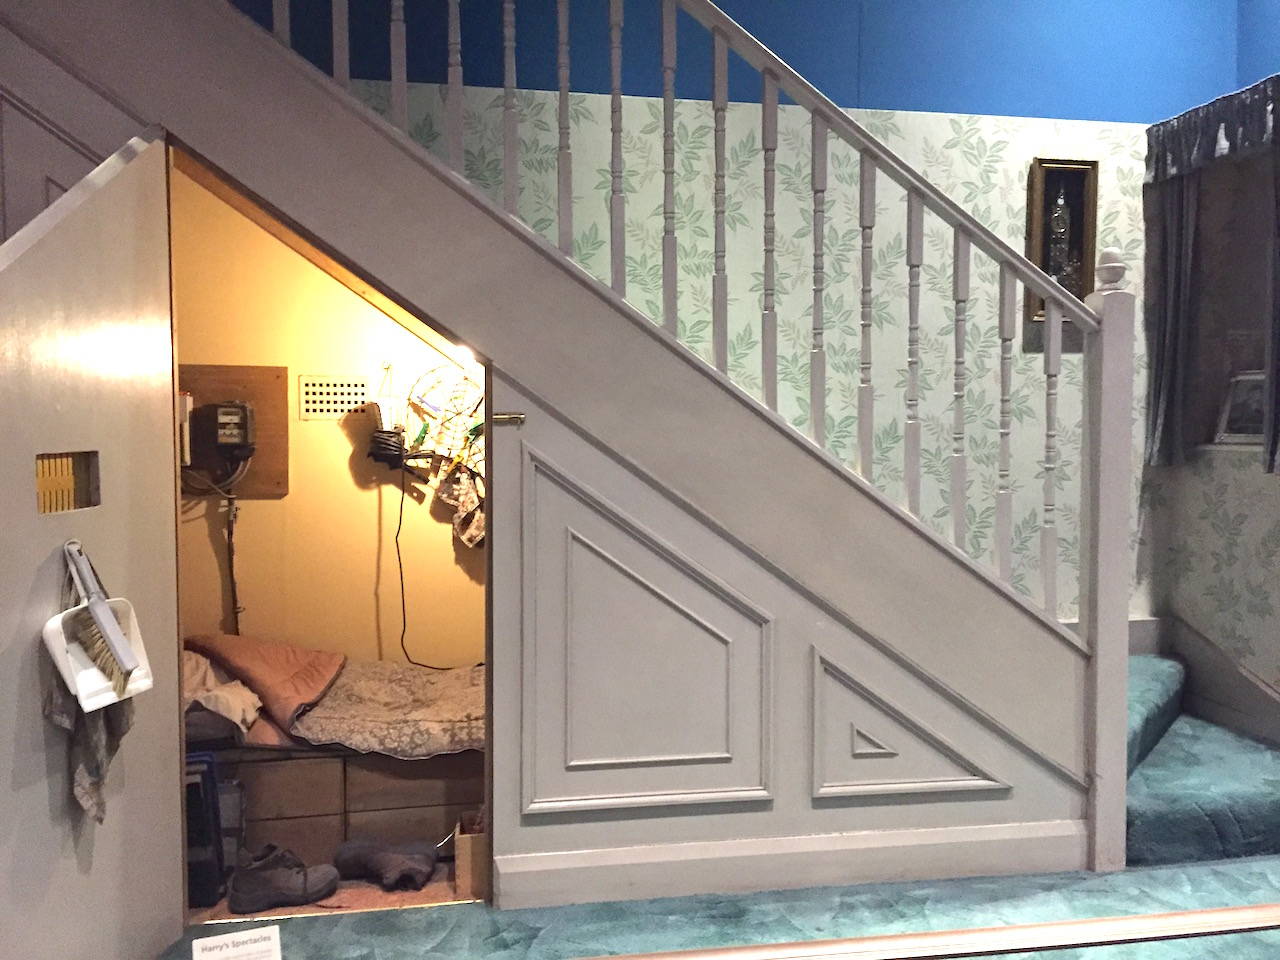 Dream Room The Cupboard Under The Stairs Part 1 The